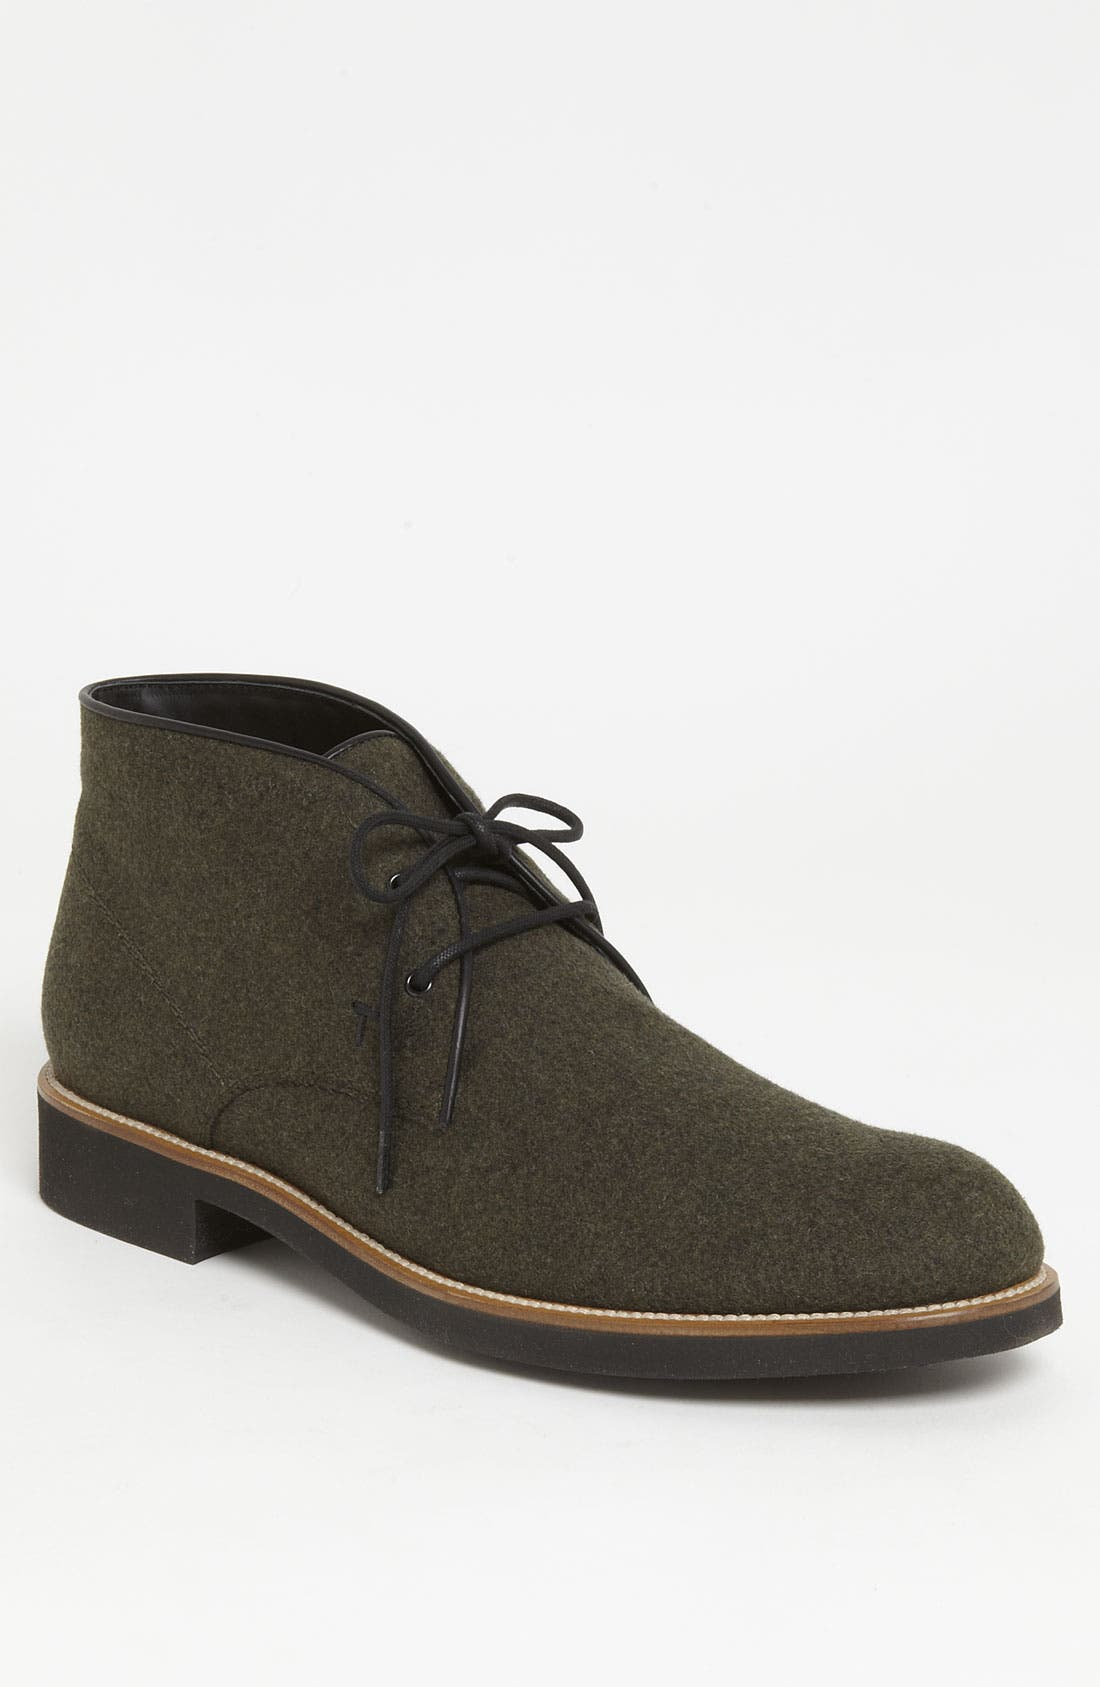 Main Image - Tod's 'Polacco' Ankle Boot